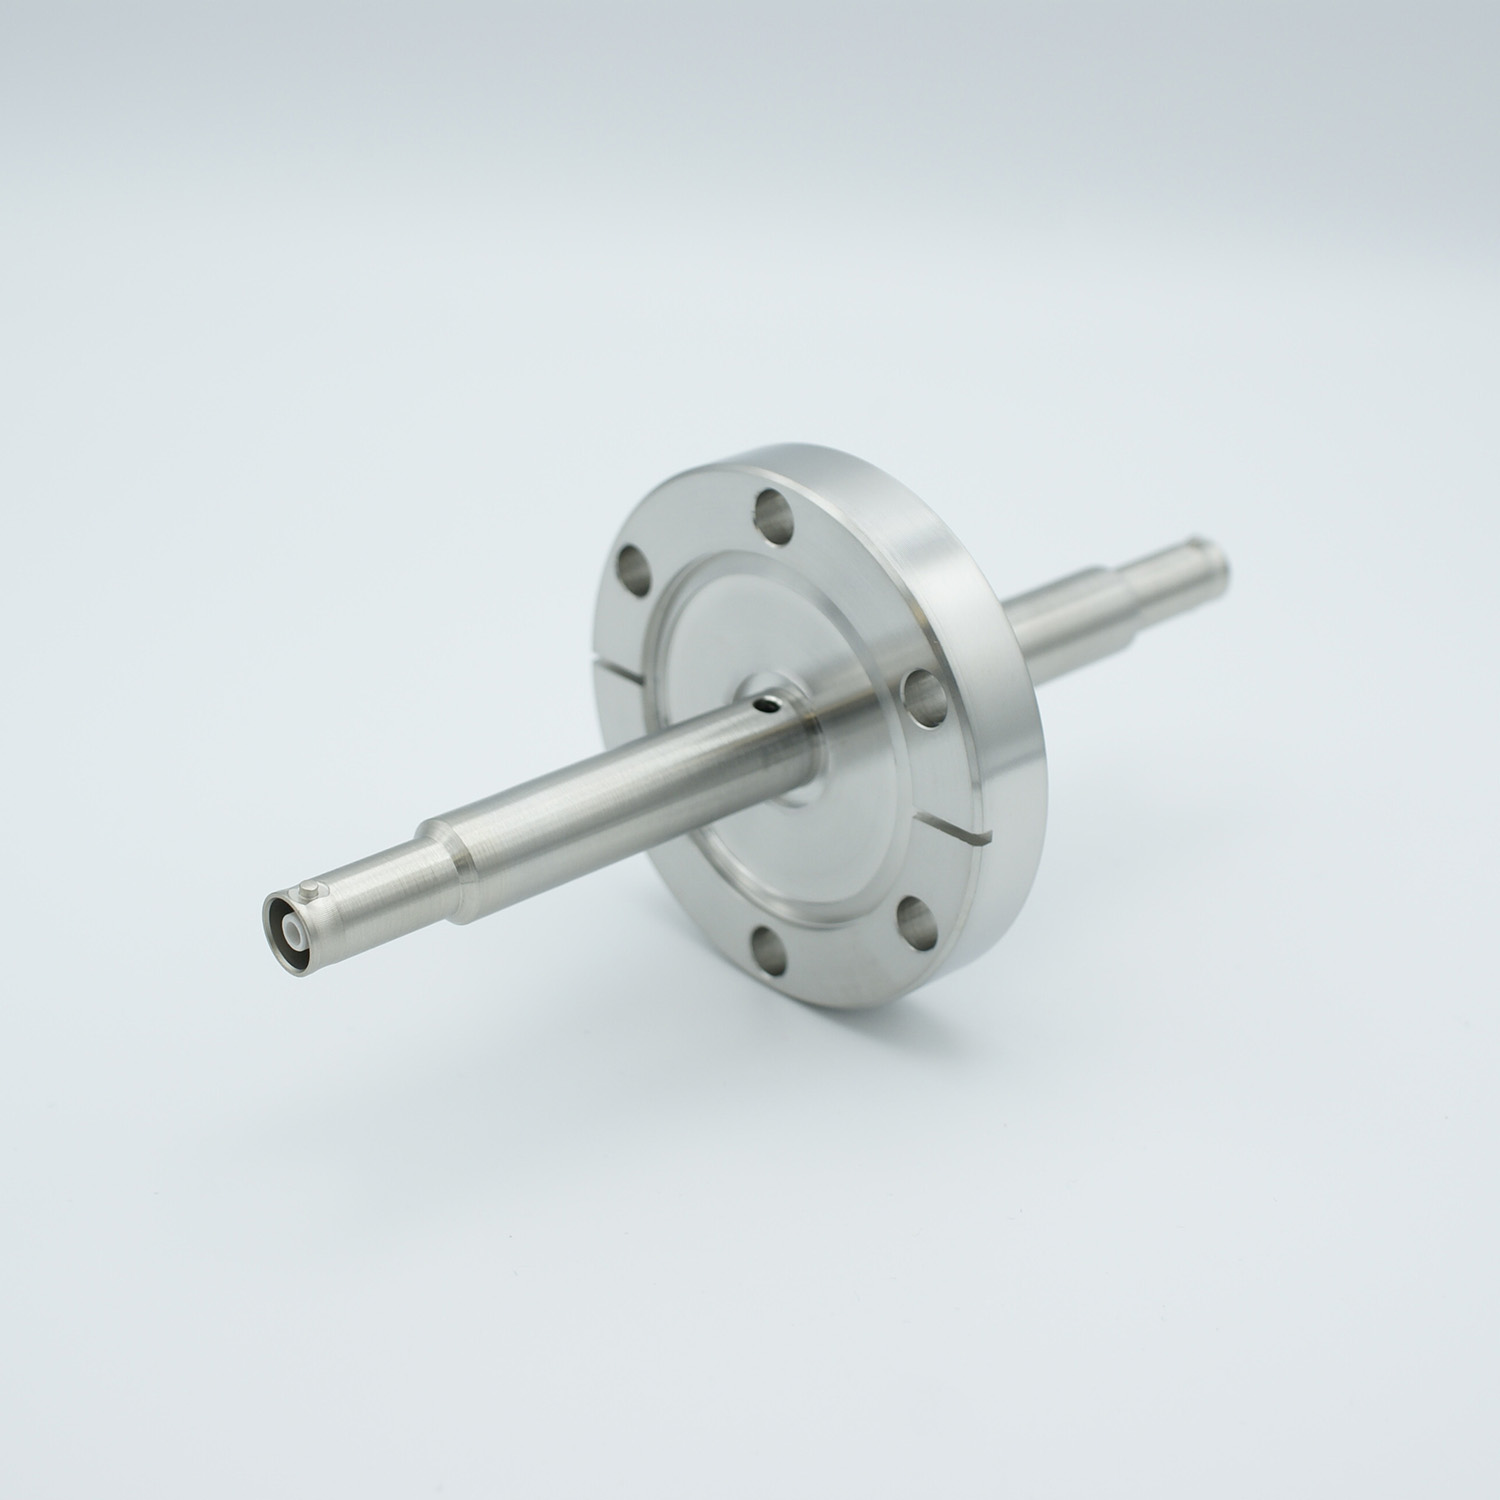 1 of grounded shield, double ended SHV-10 Amp 10000 VDC feedthrough, air side connector included DN40KF